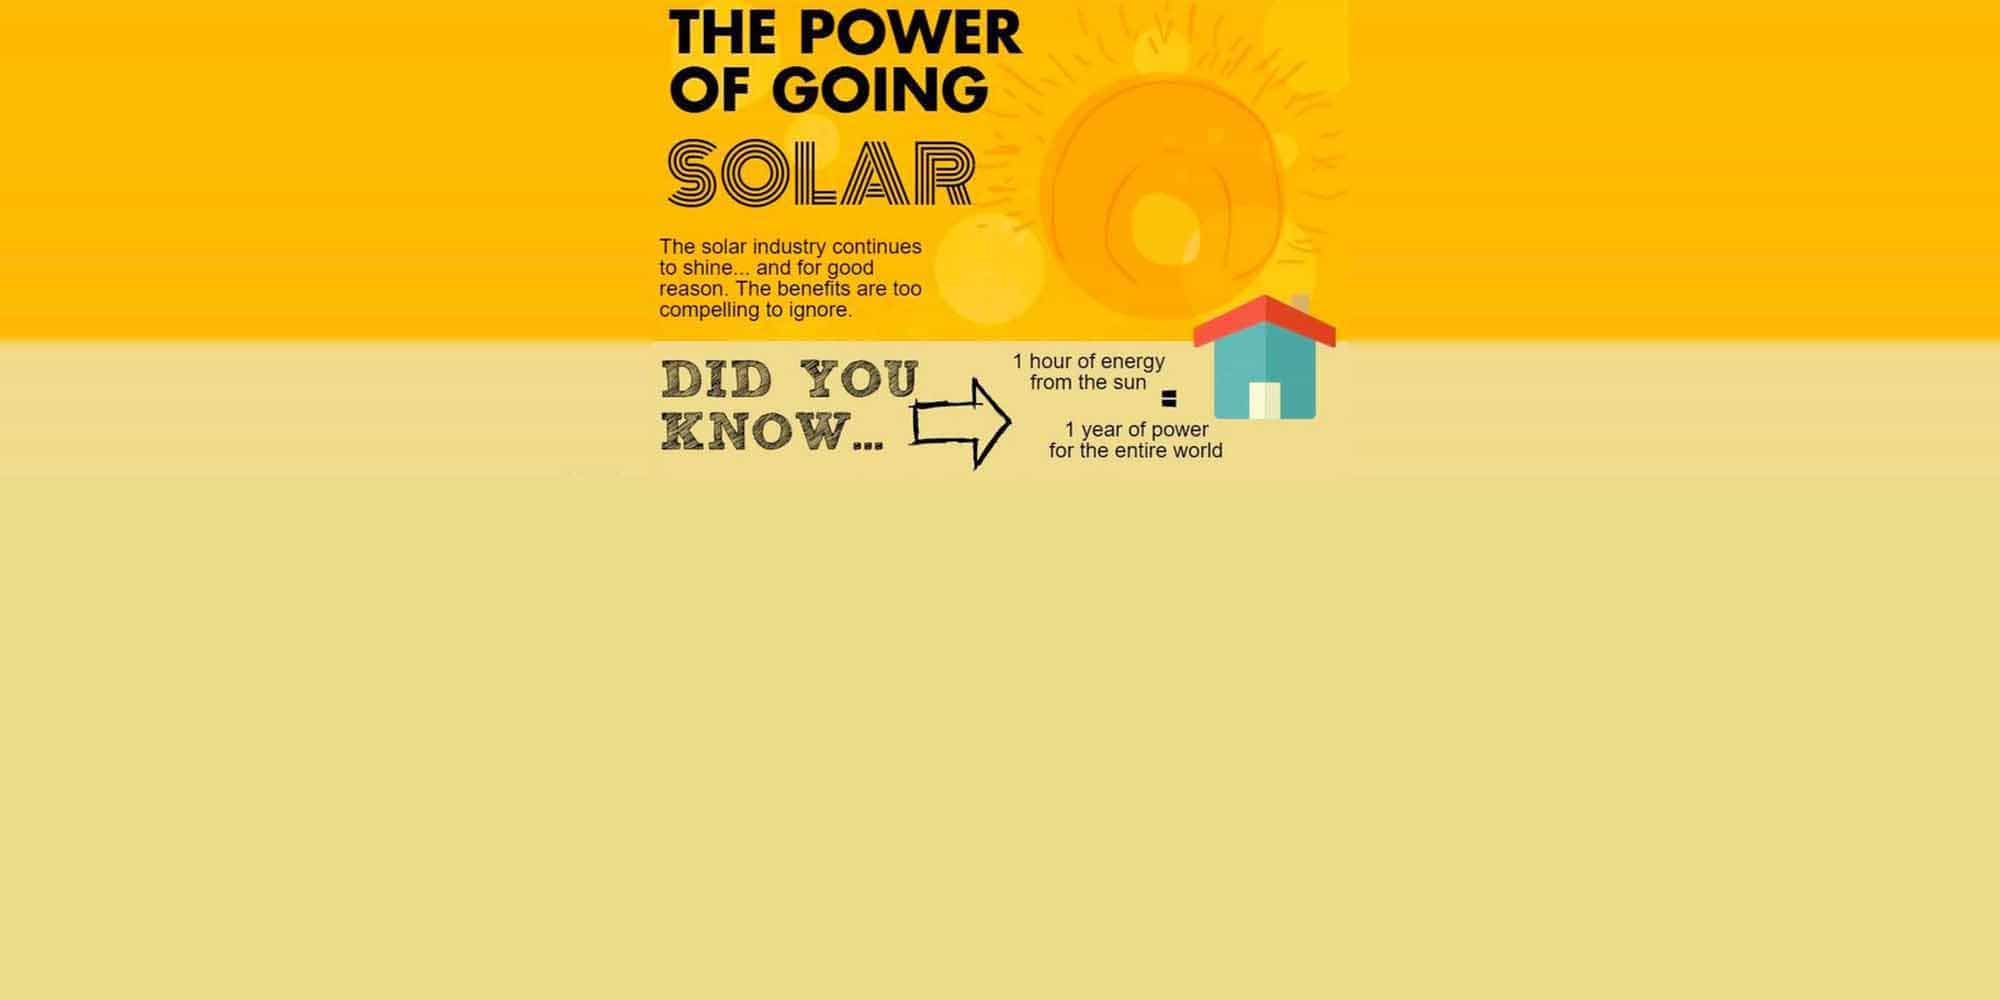 the power of going solar by paksolar services